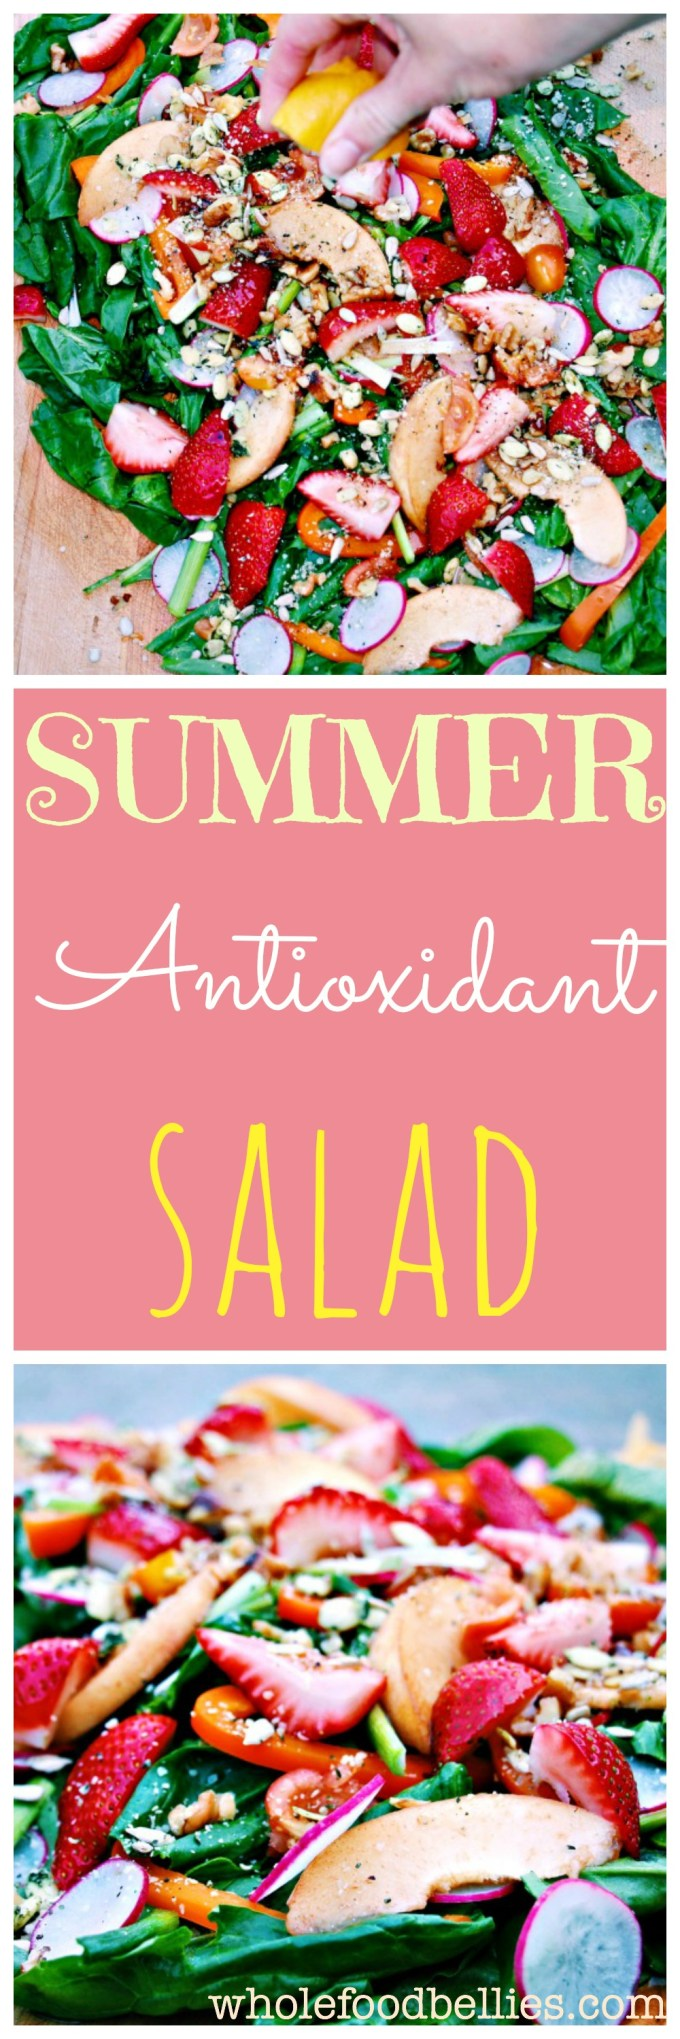 Fresh and vibrant, this Summer Antioxidant Salad is the perfect accompaniment to a lazy summer BBQ. Pile all the ingredients onto a chopping board, drizzle on the dressing and enjoy